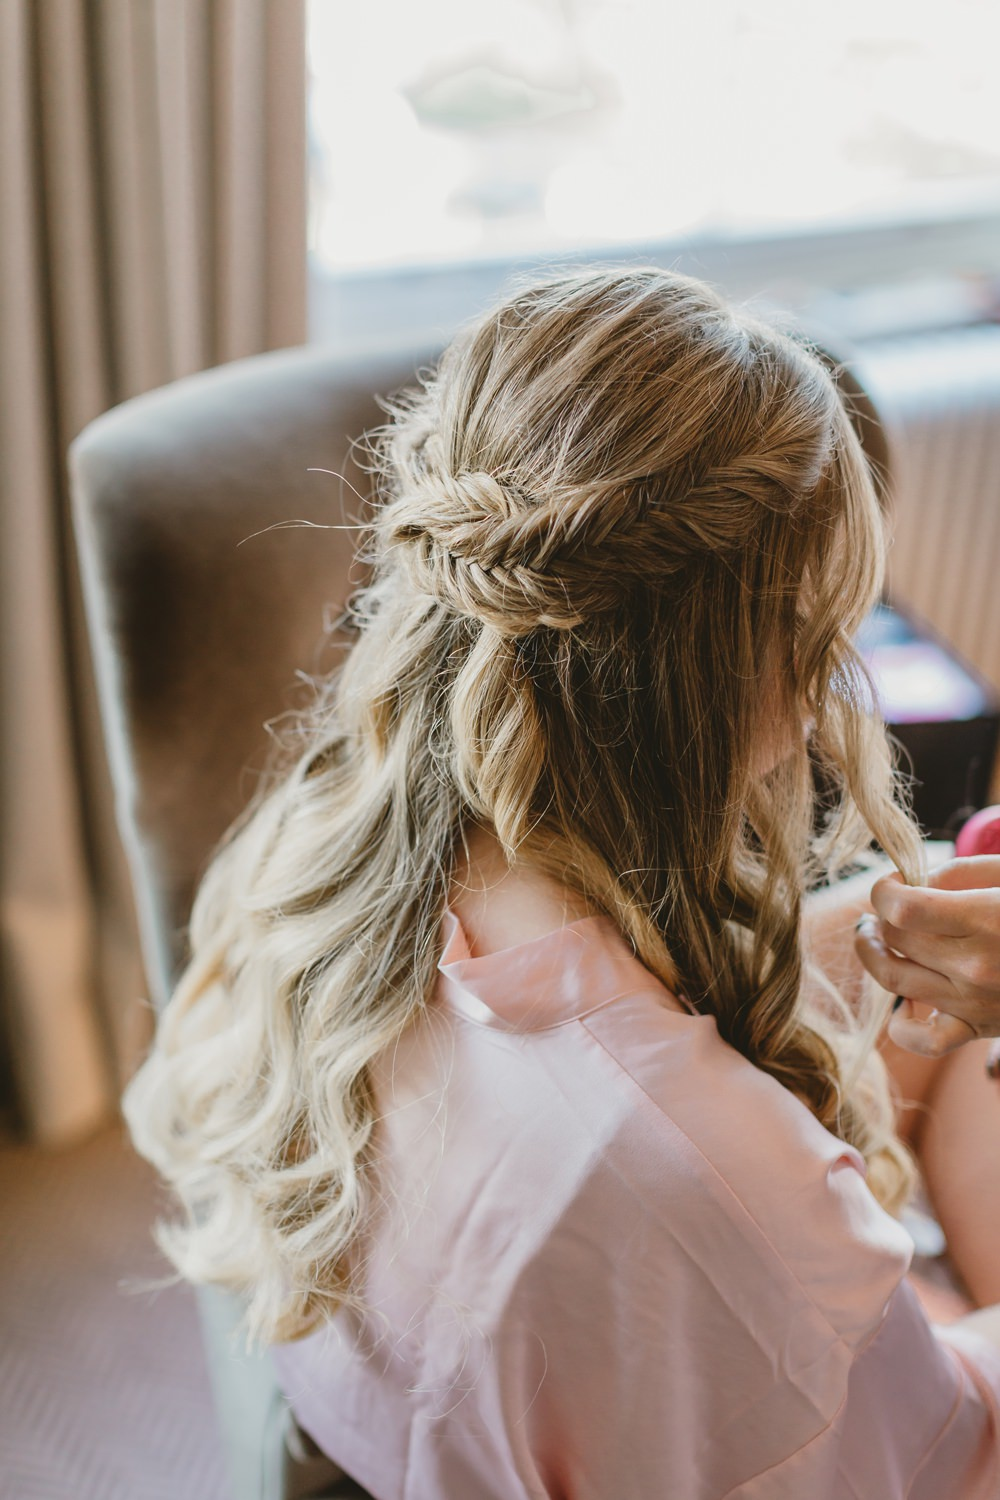 Bride Bridal Hair Style Half Up Half Down Plait Braid York Minster Wedding Amy Lou Photography